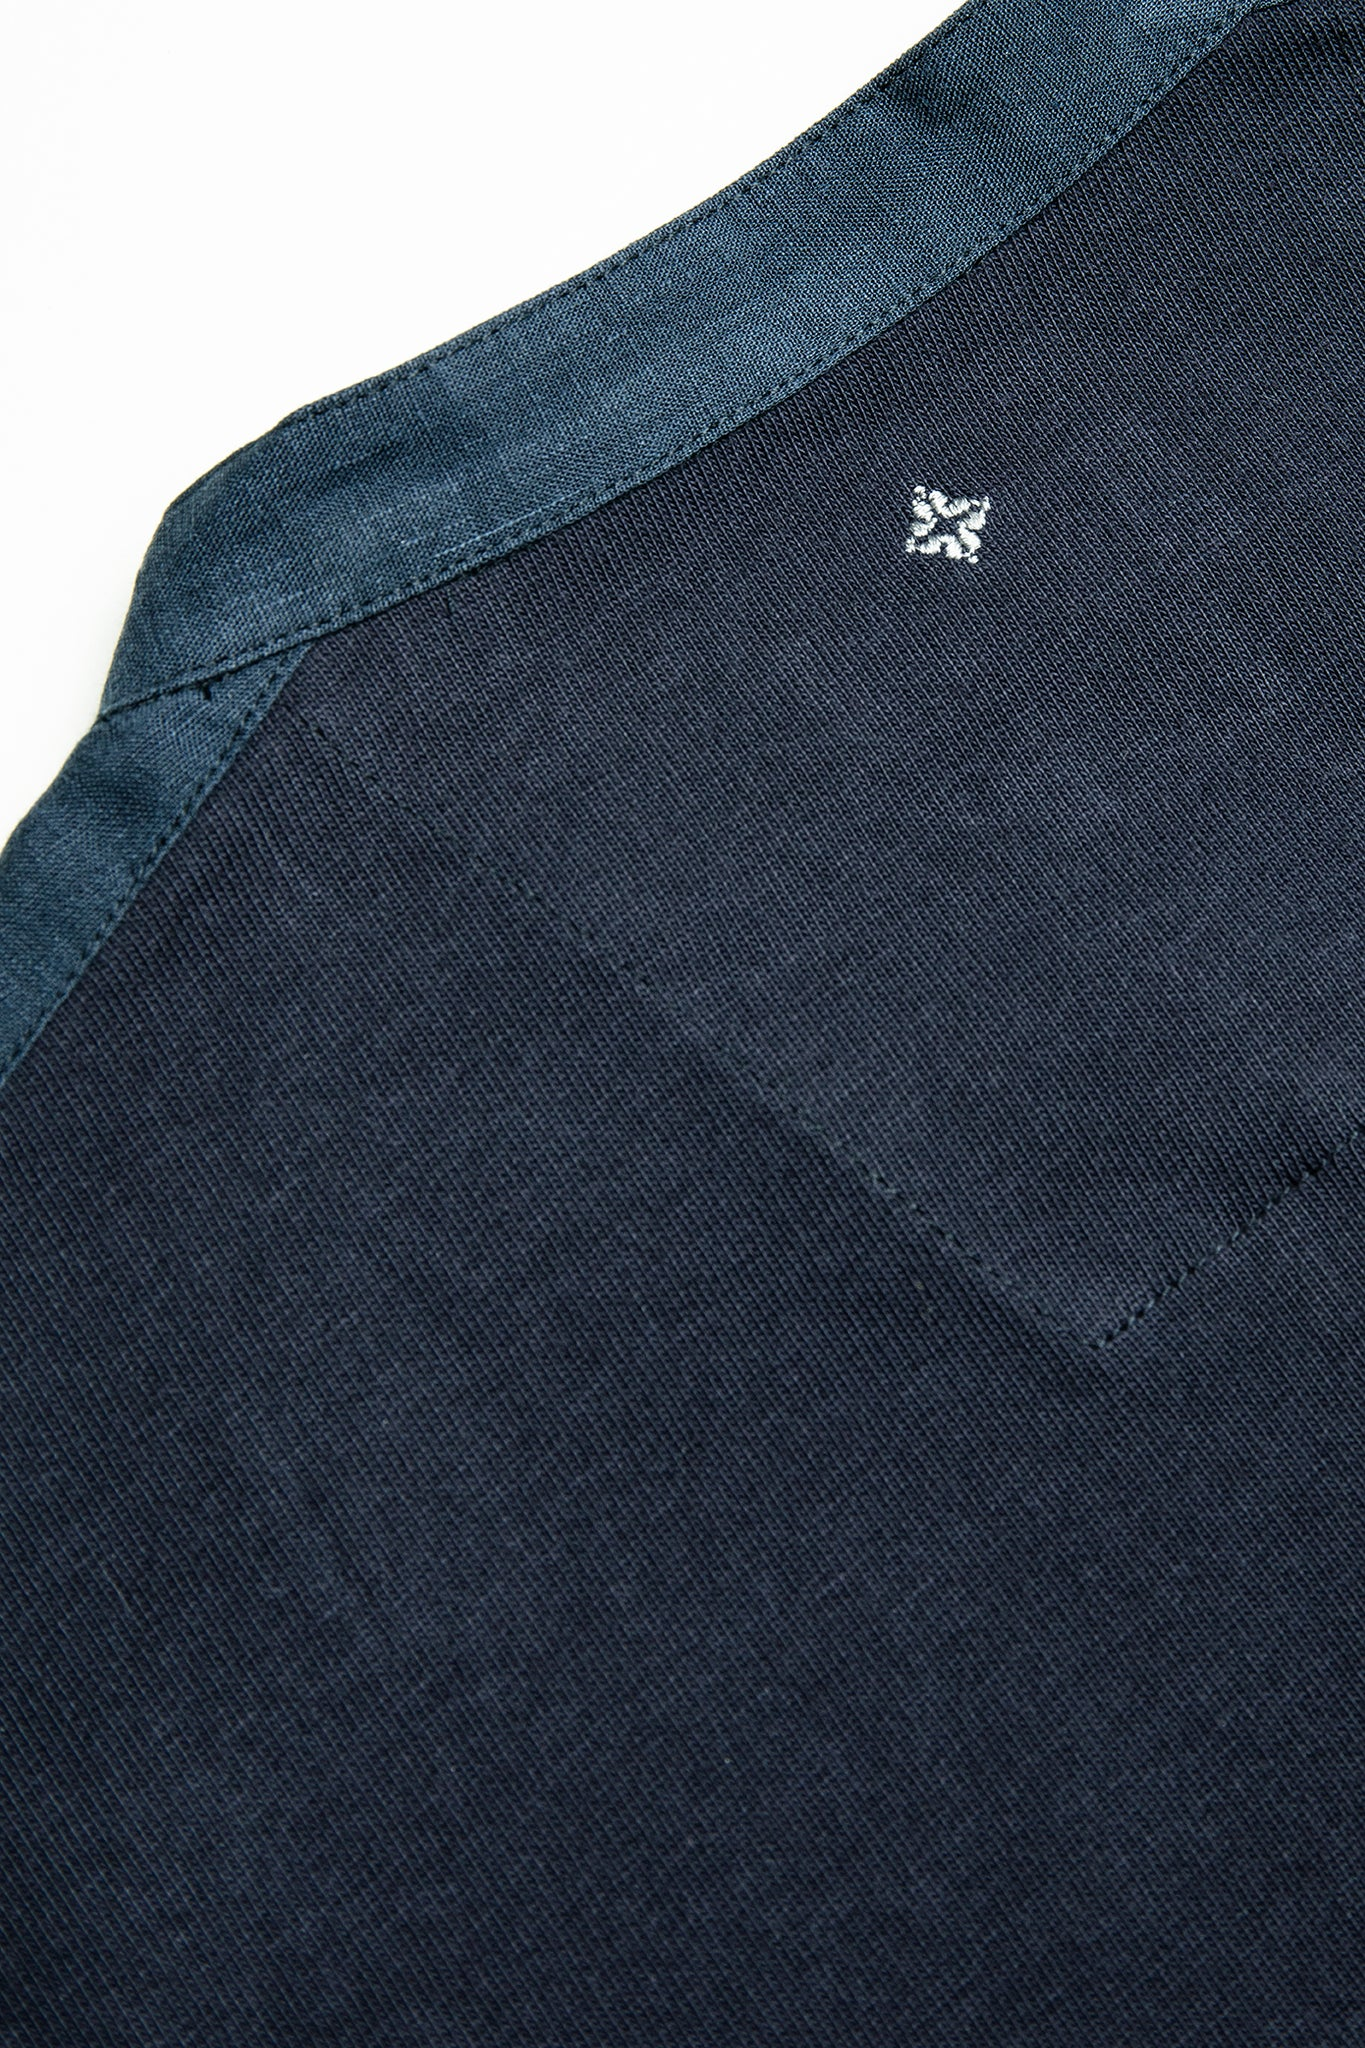 Marc t-shirt in heavy cotton jersey (dark blue)